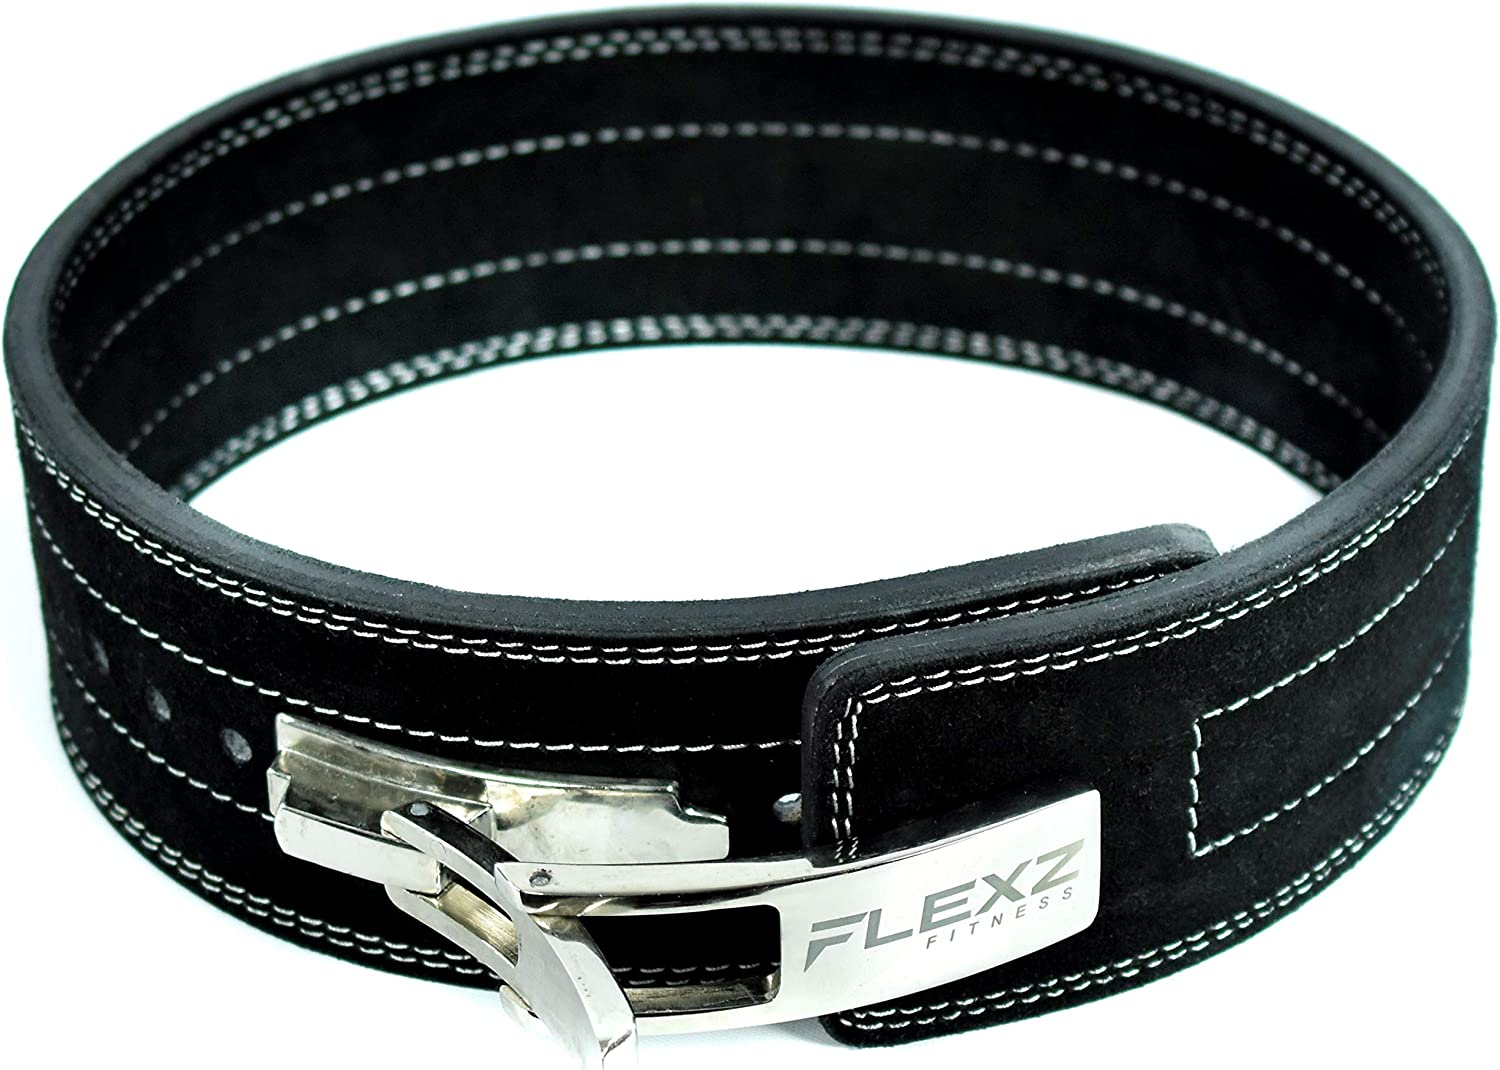 FlexzFitness Leather Power Lifting Belt for Men & Women Lower Back Support for Weightlifting : Sports & Outdoors